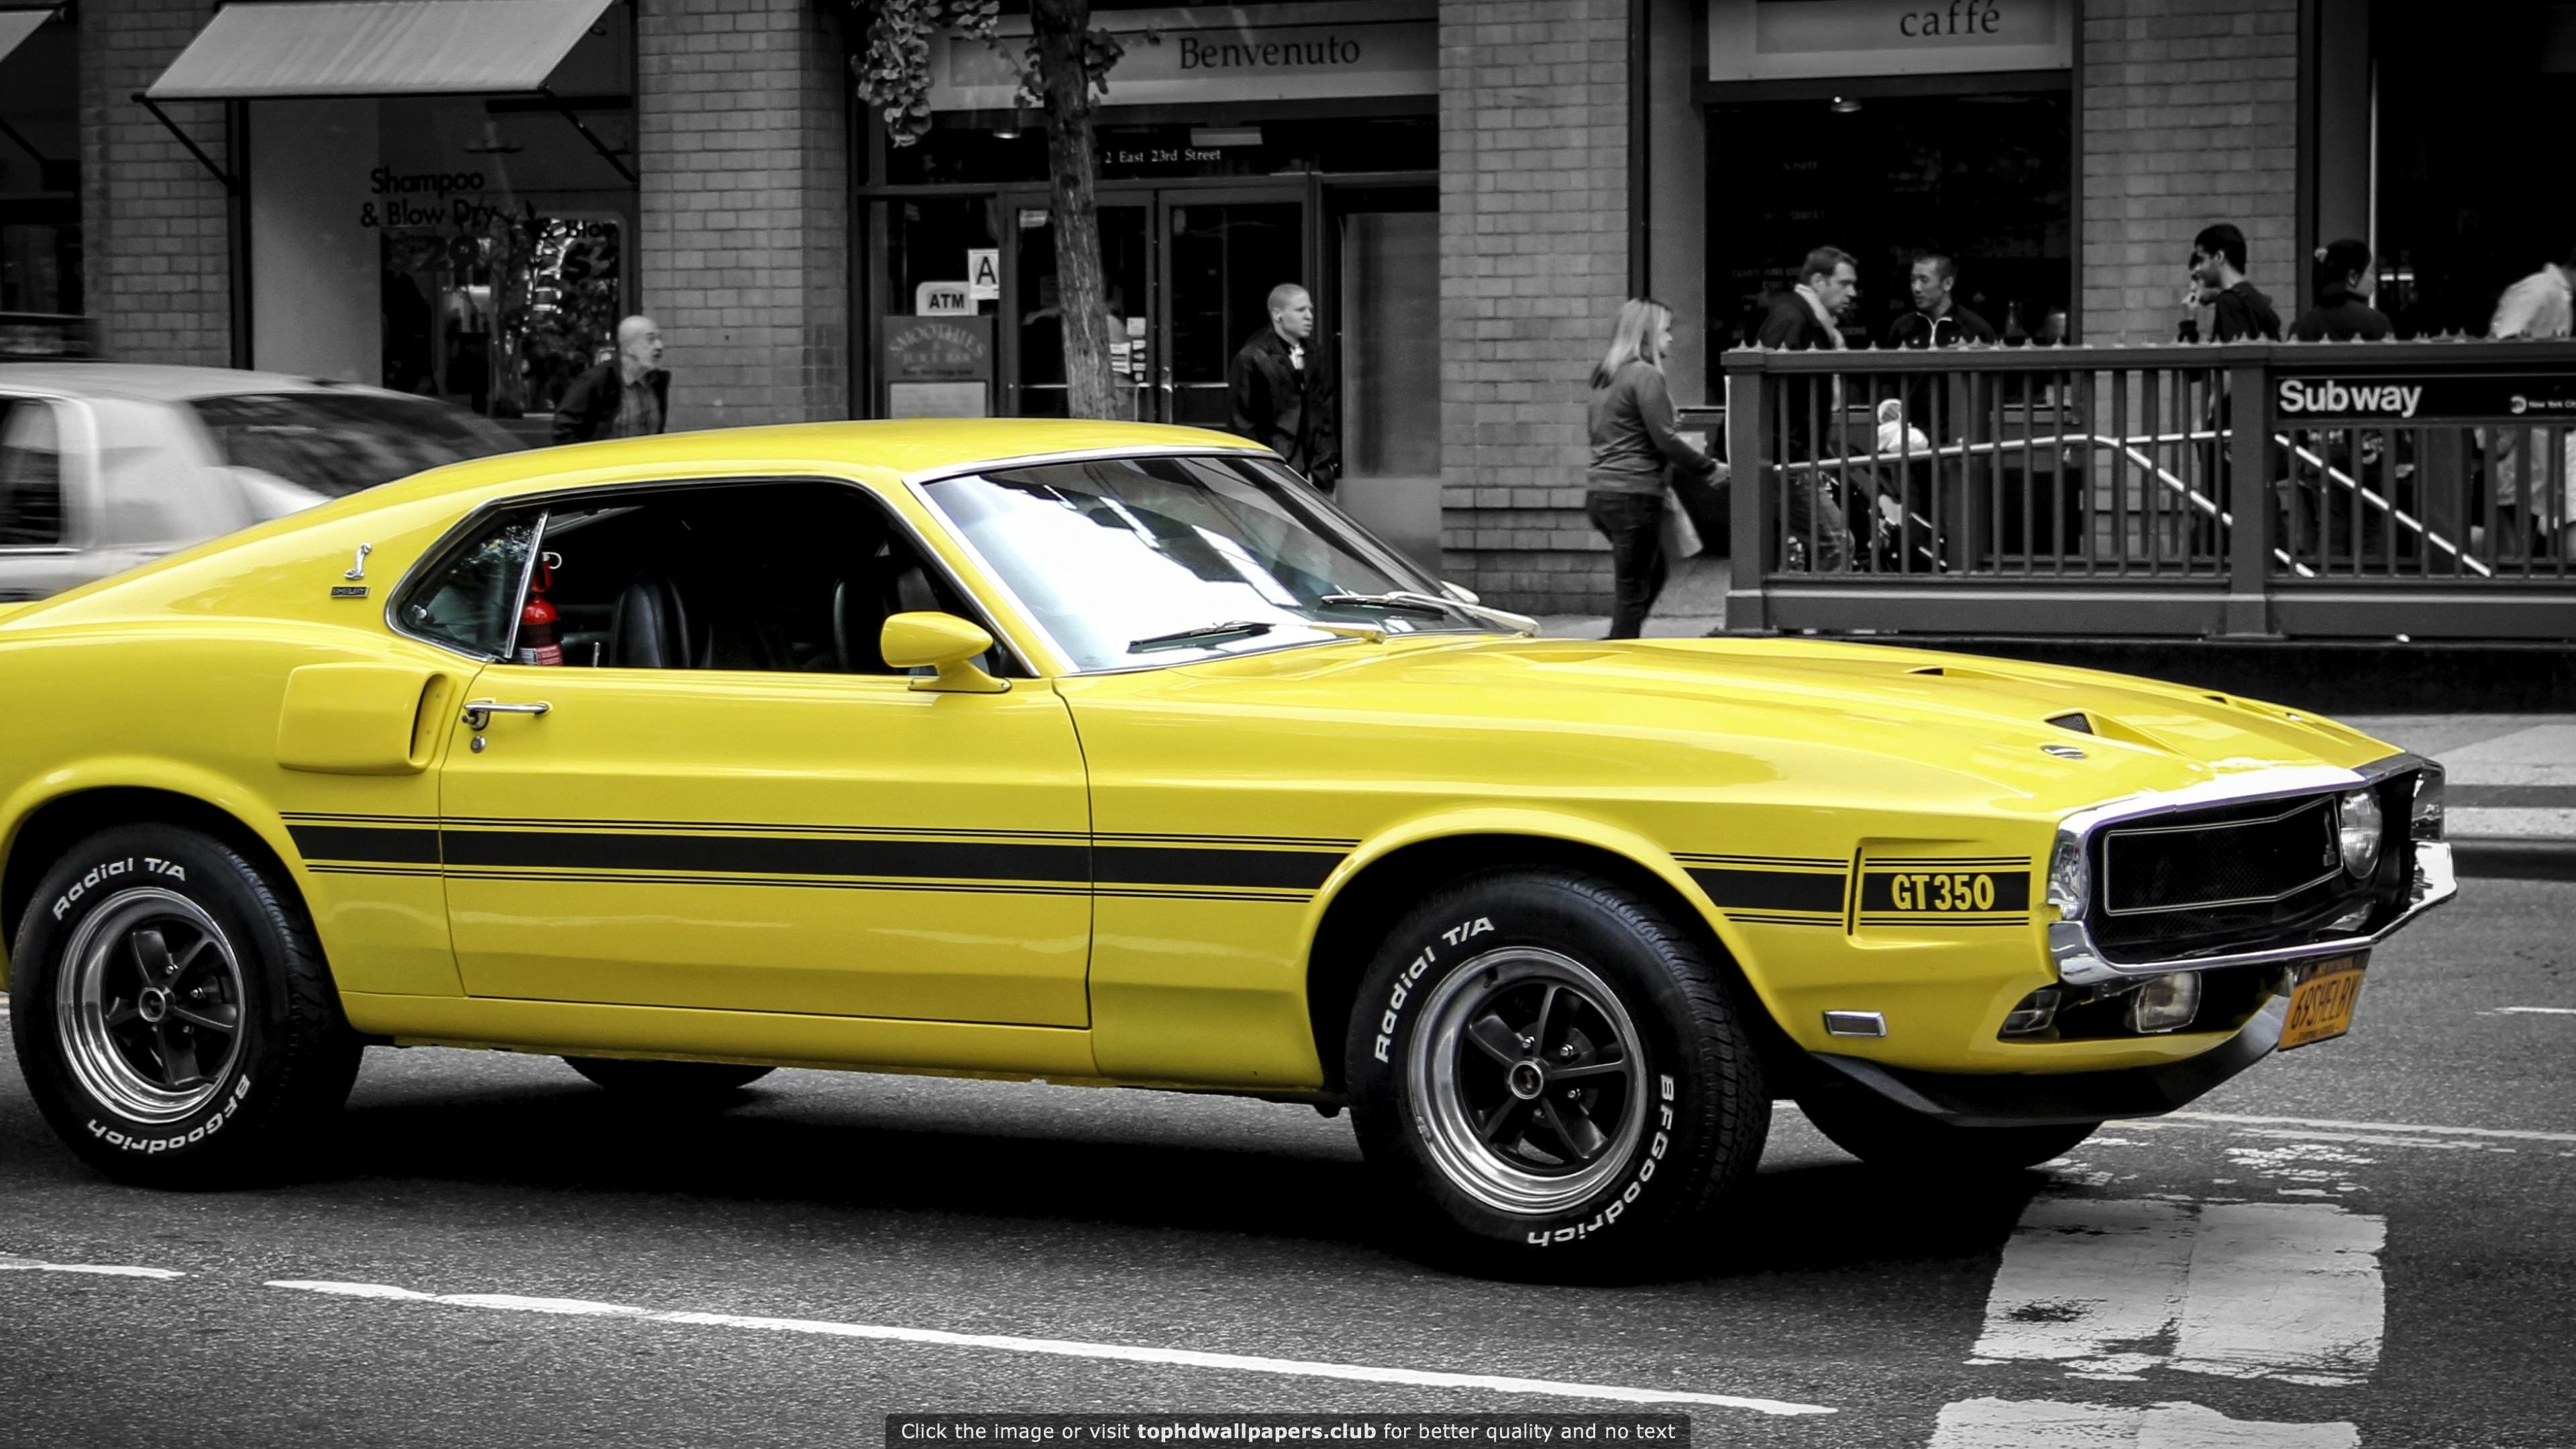 Ford Mustang Gt Hd Wallpaper For Your Pc Mac Or Mobile Device Ford Mustang Gt Ford Mustang Mustang